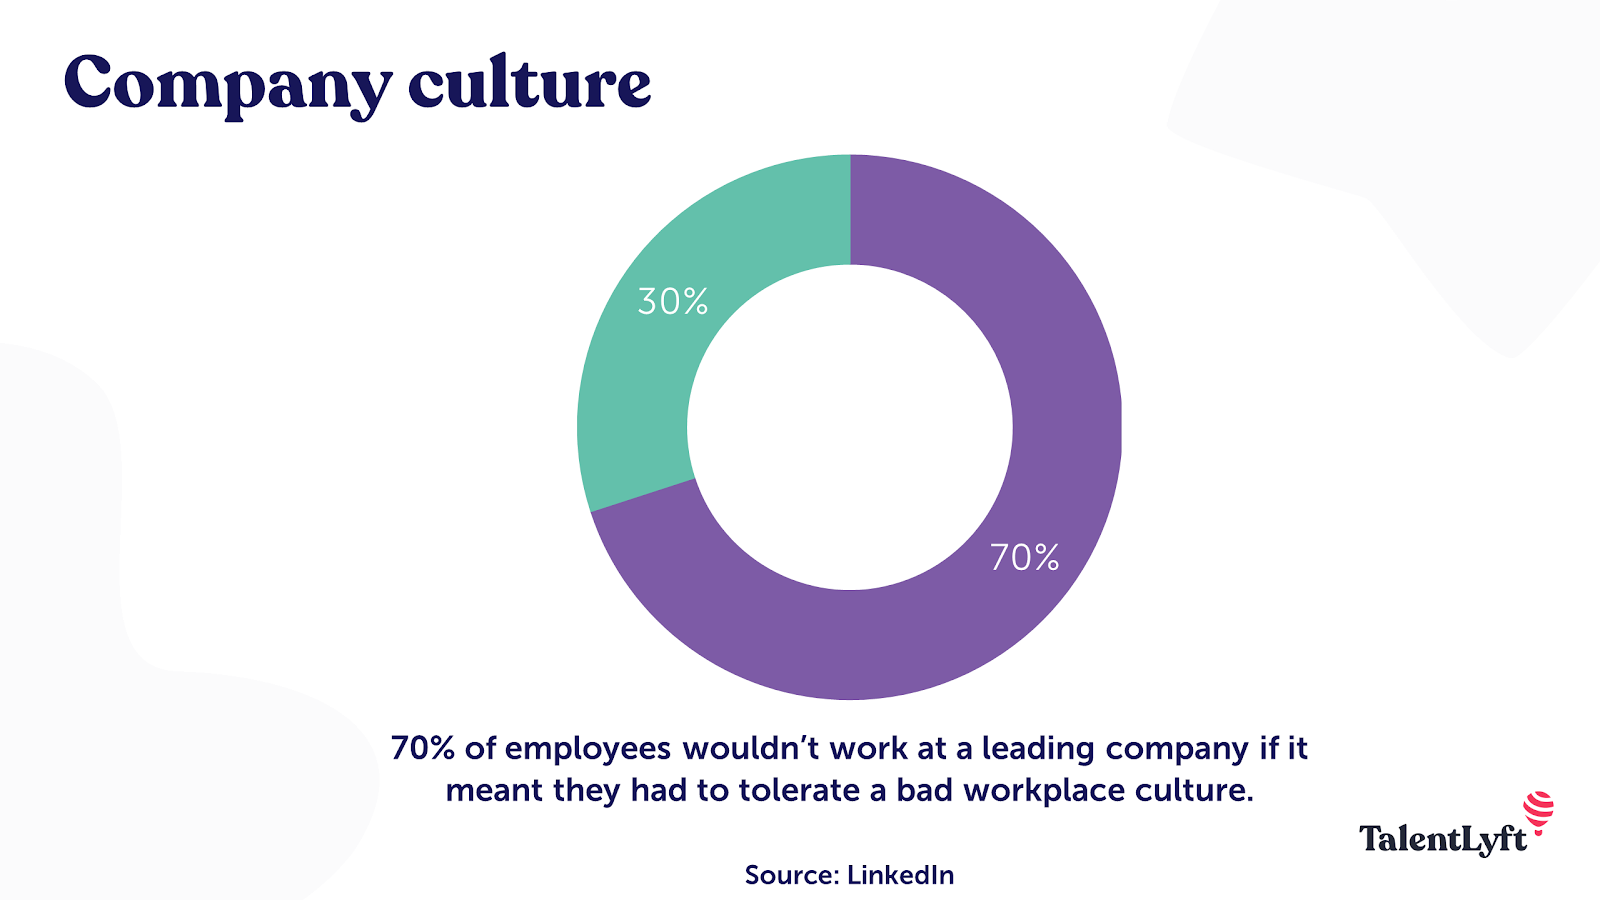 Company culture importance for job seekers